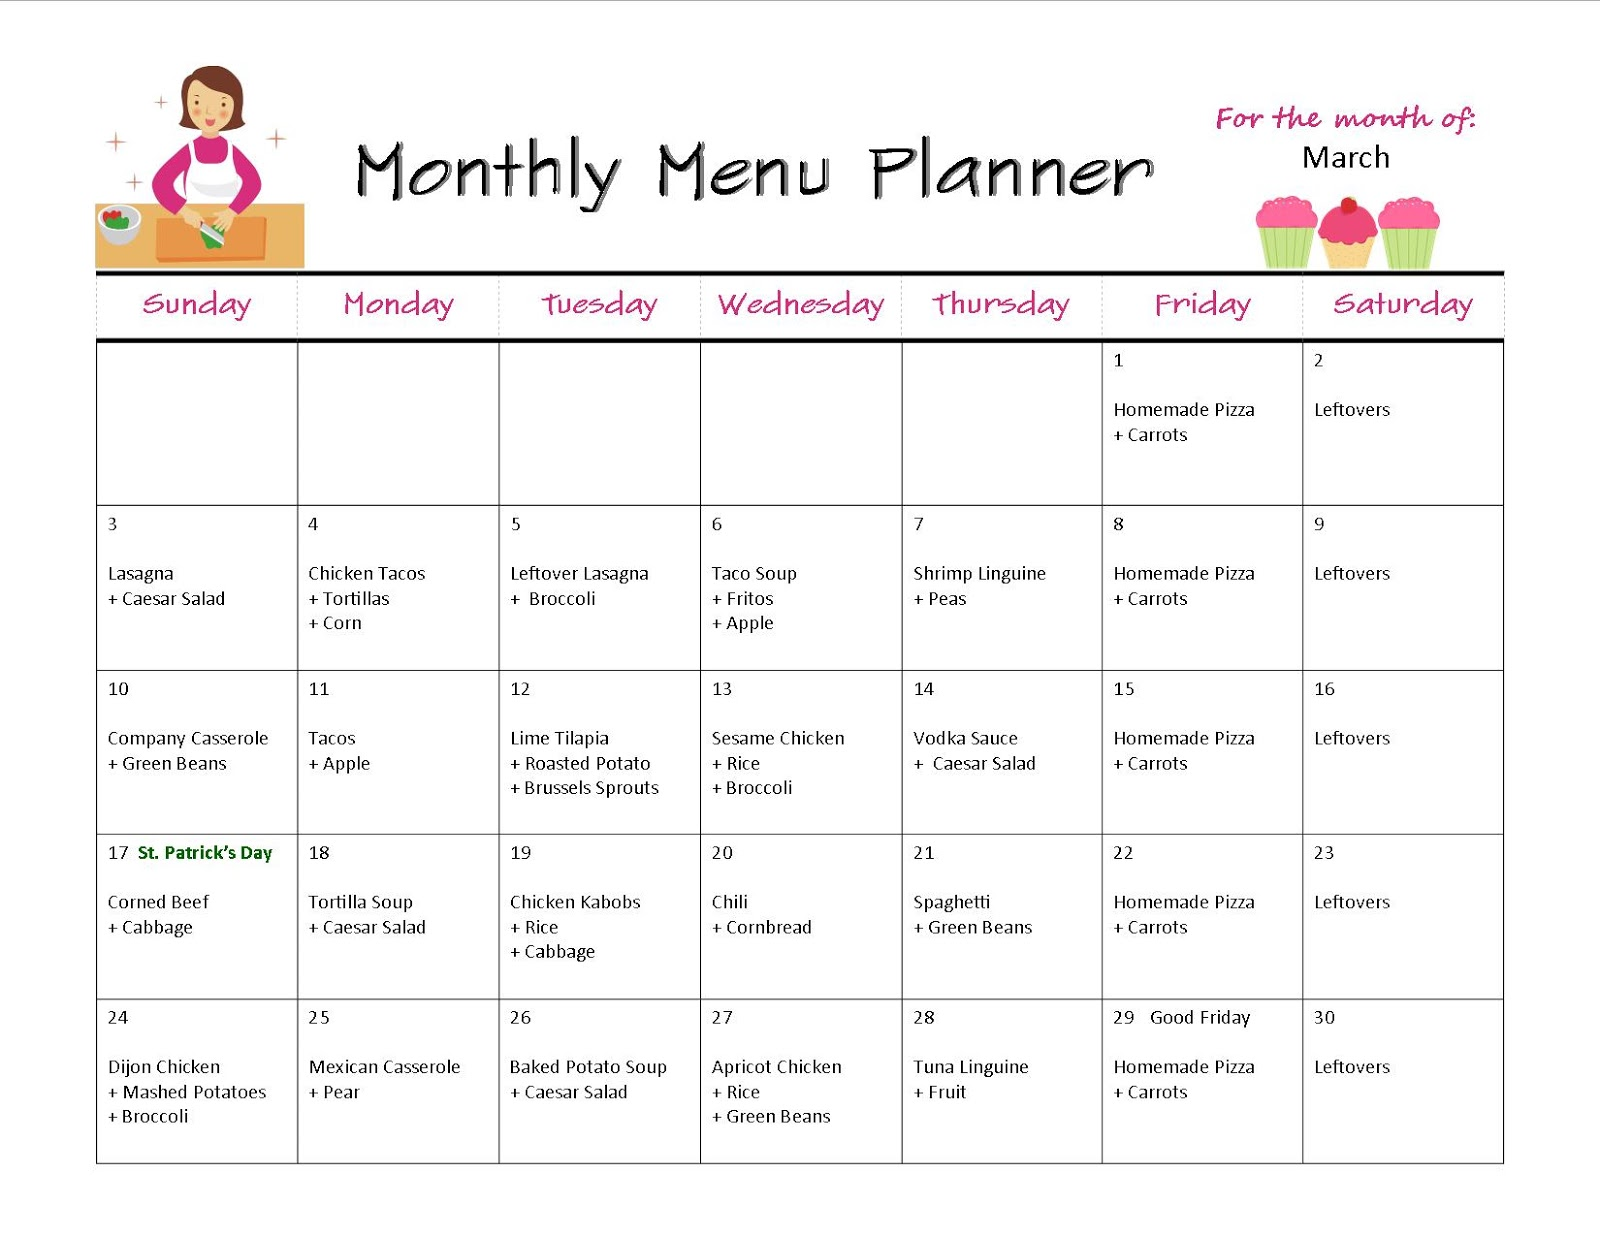 Monthly Menu Planner November 2008 7-12 Lunch Menu MENUS SUBJECT